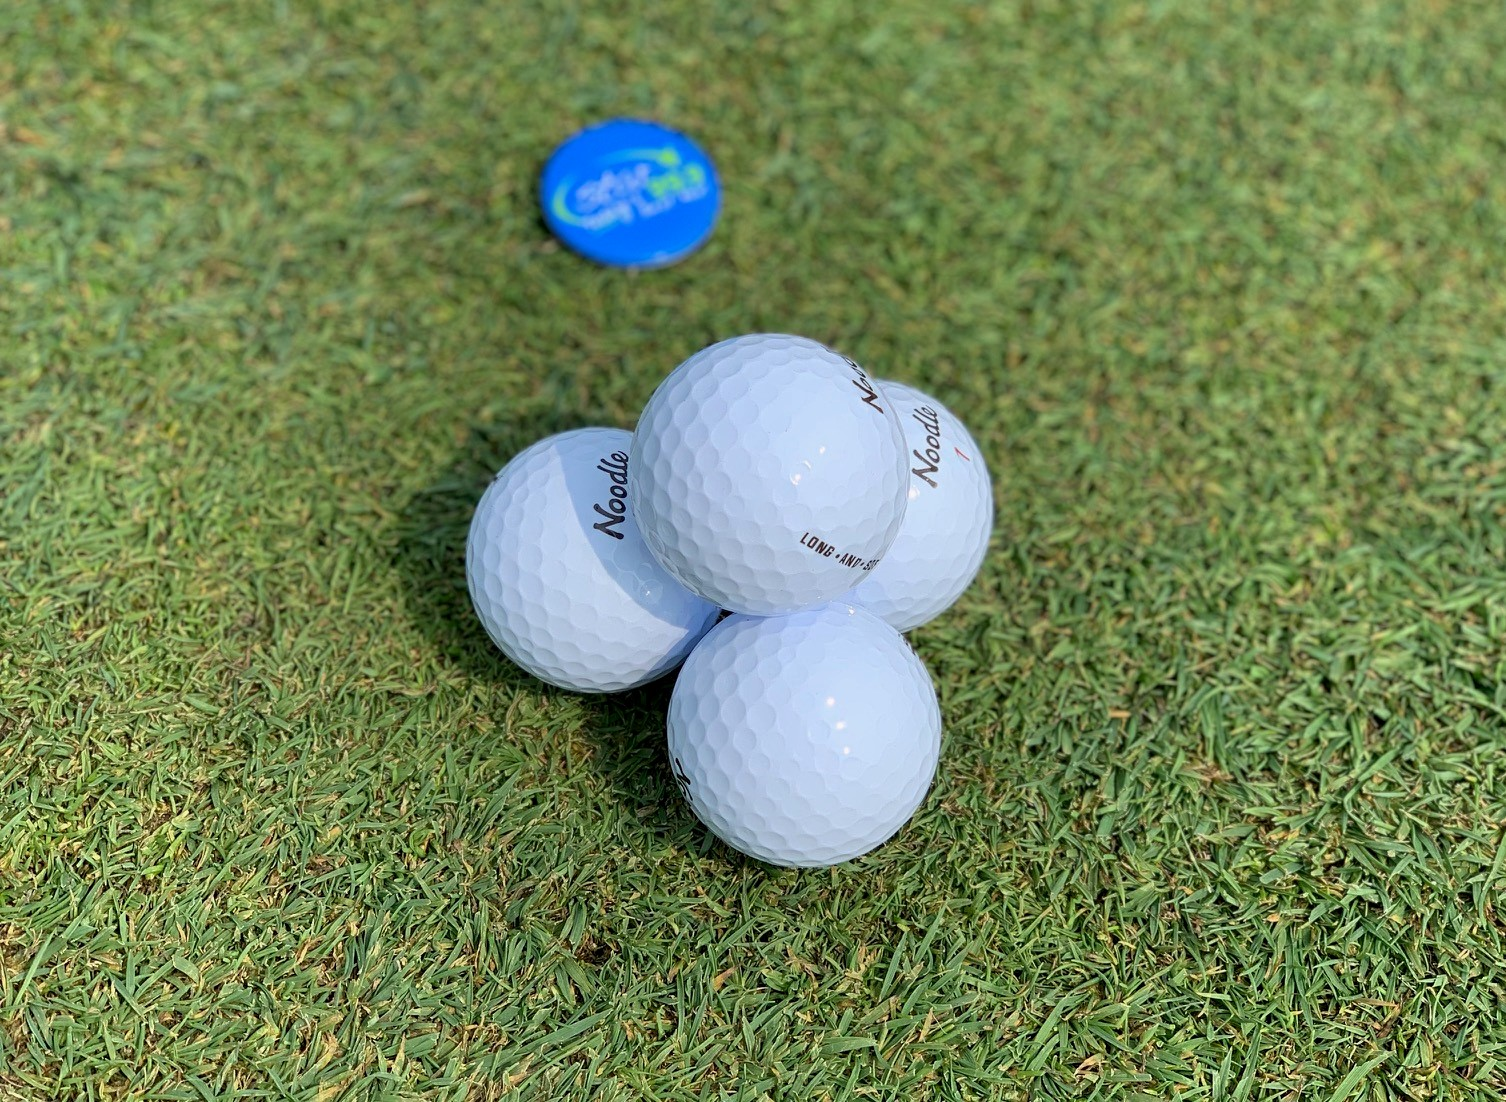 MUNDANE MYSTERIES: How many dimples are on a golf ball?